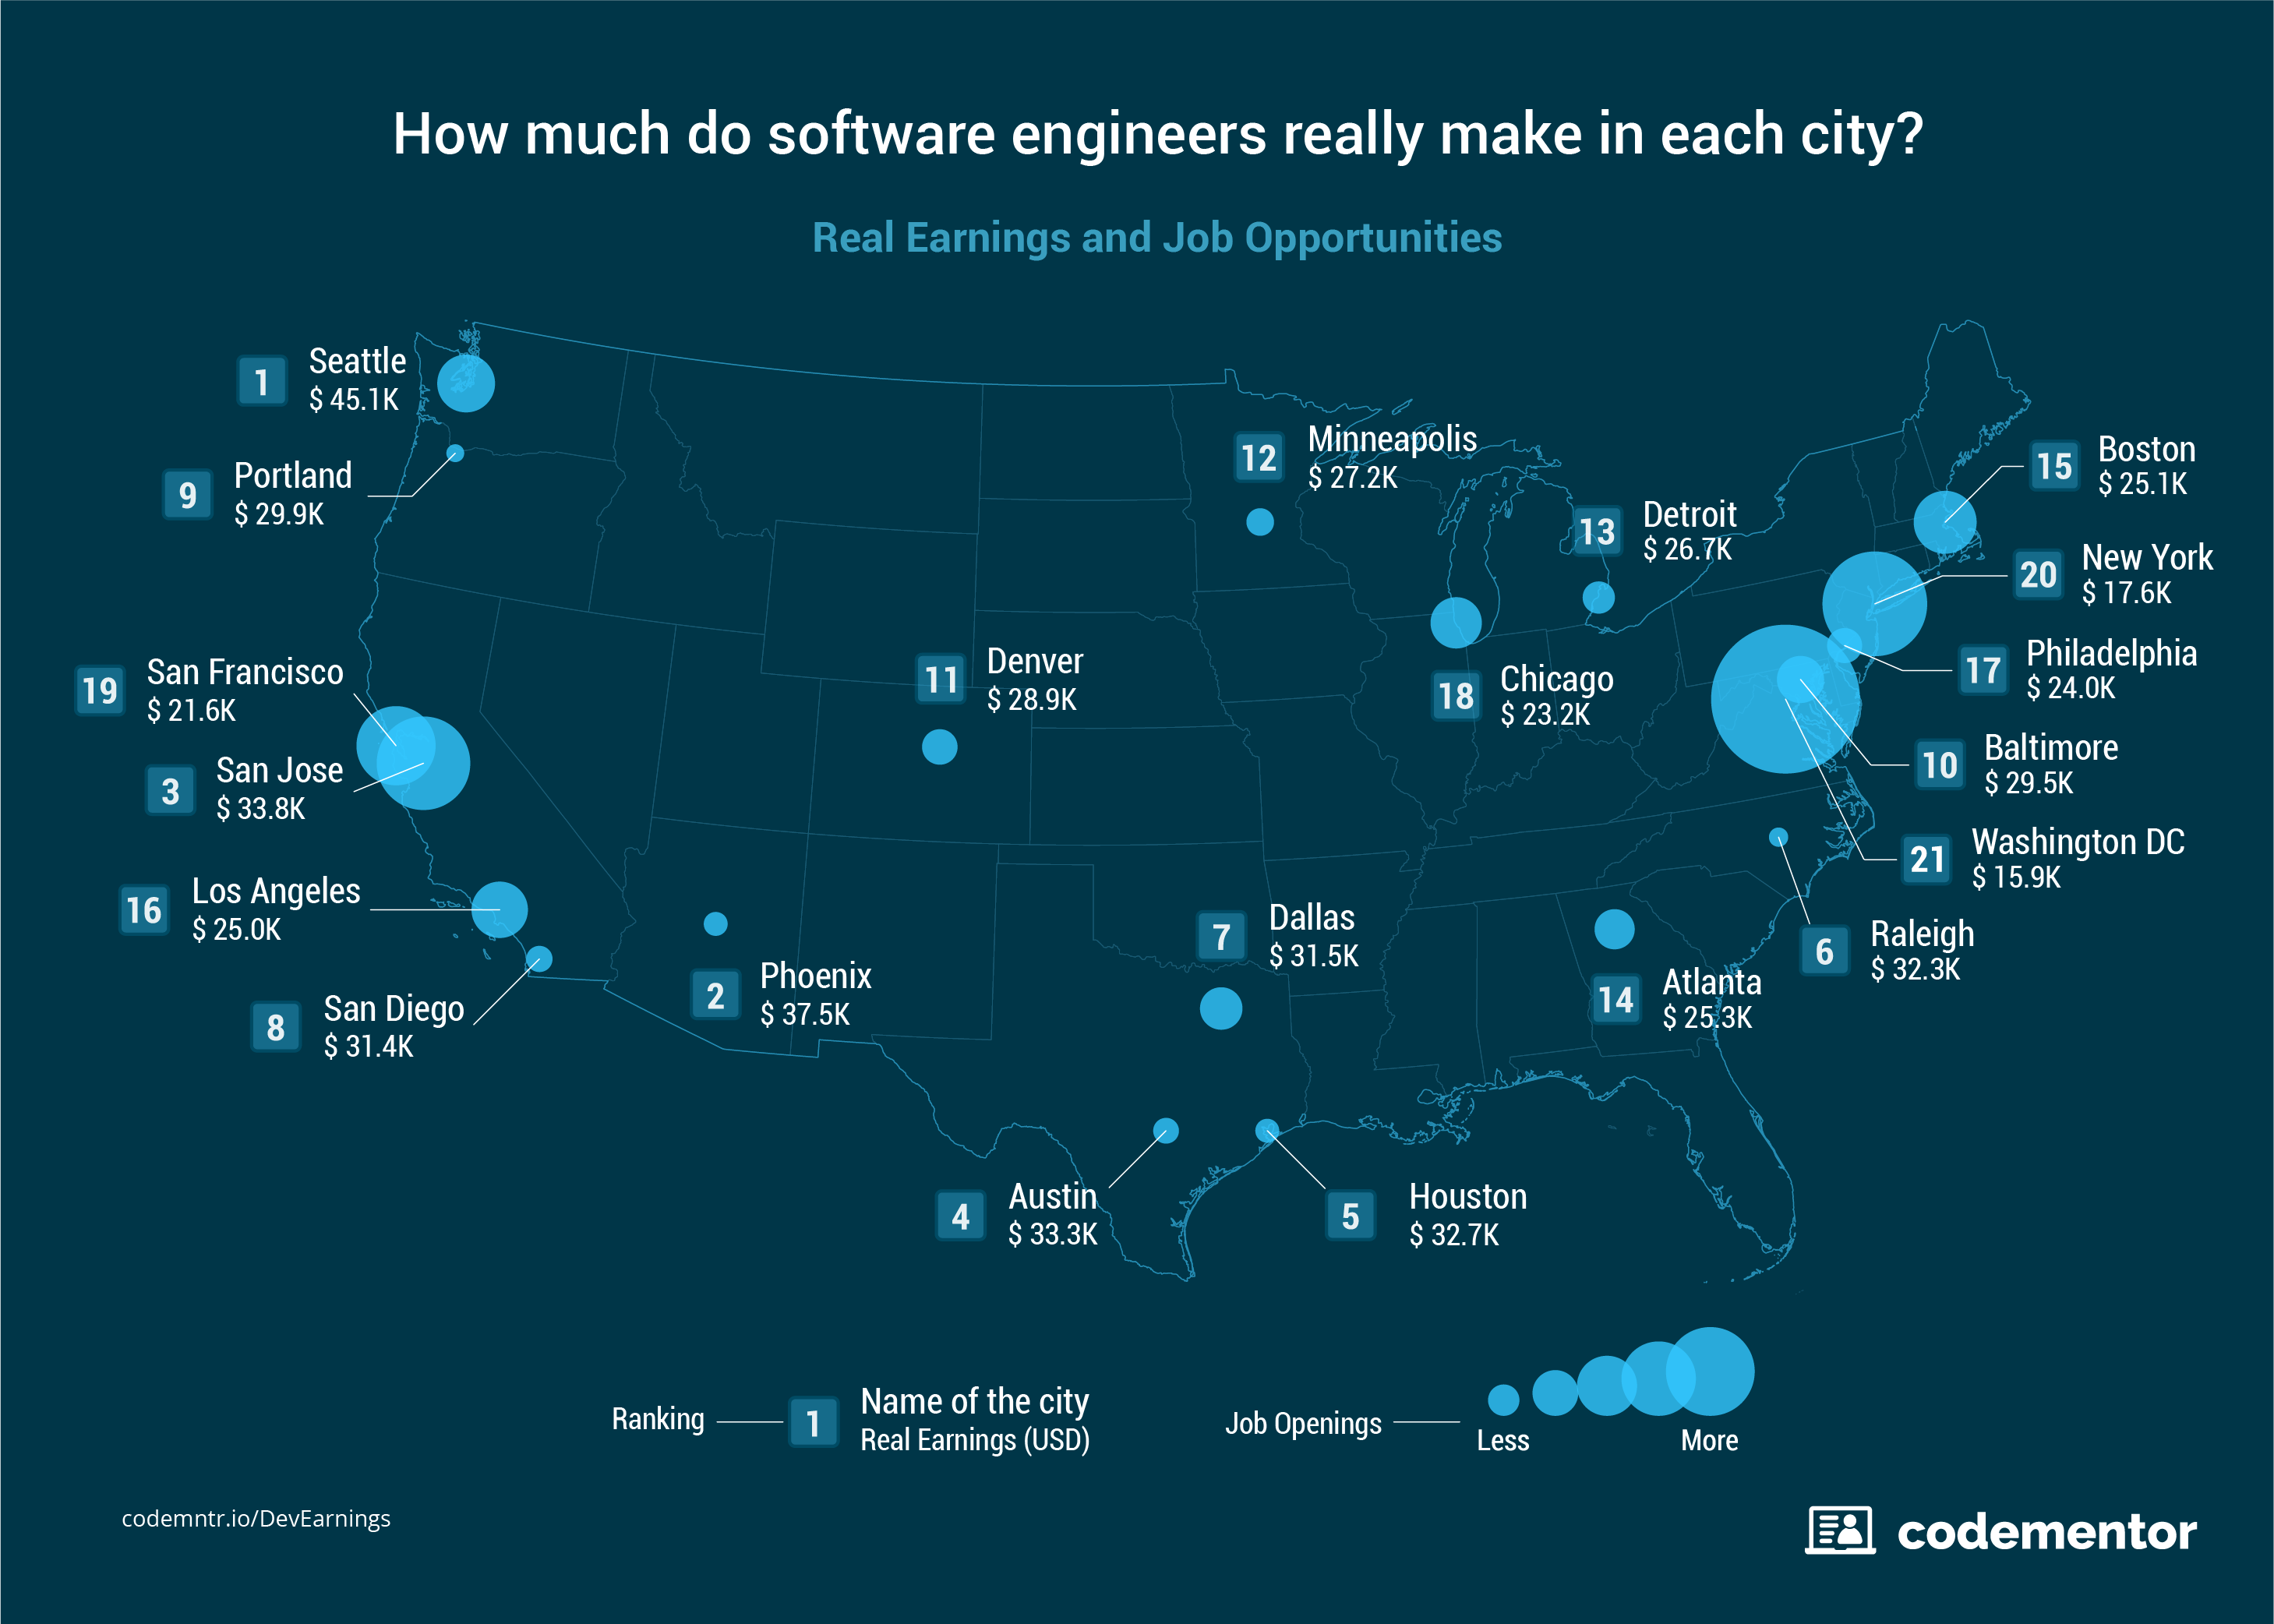 How Much Do Software Engineers Really Make in Each City?